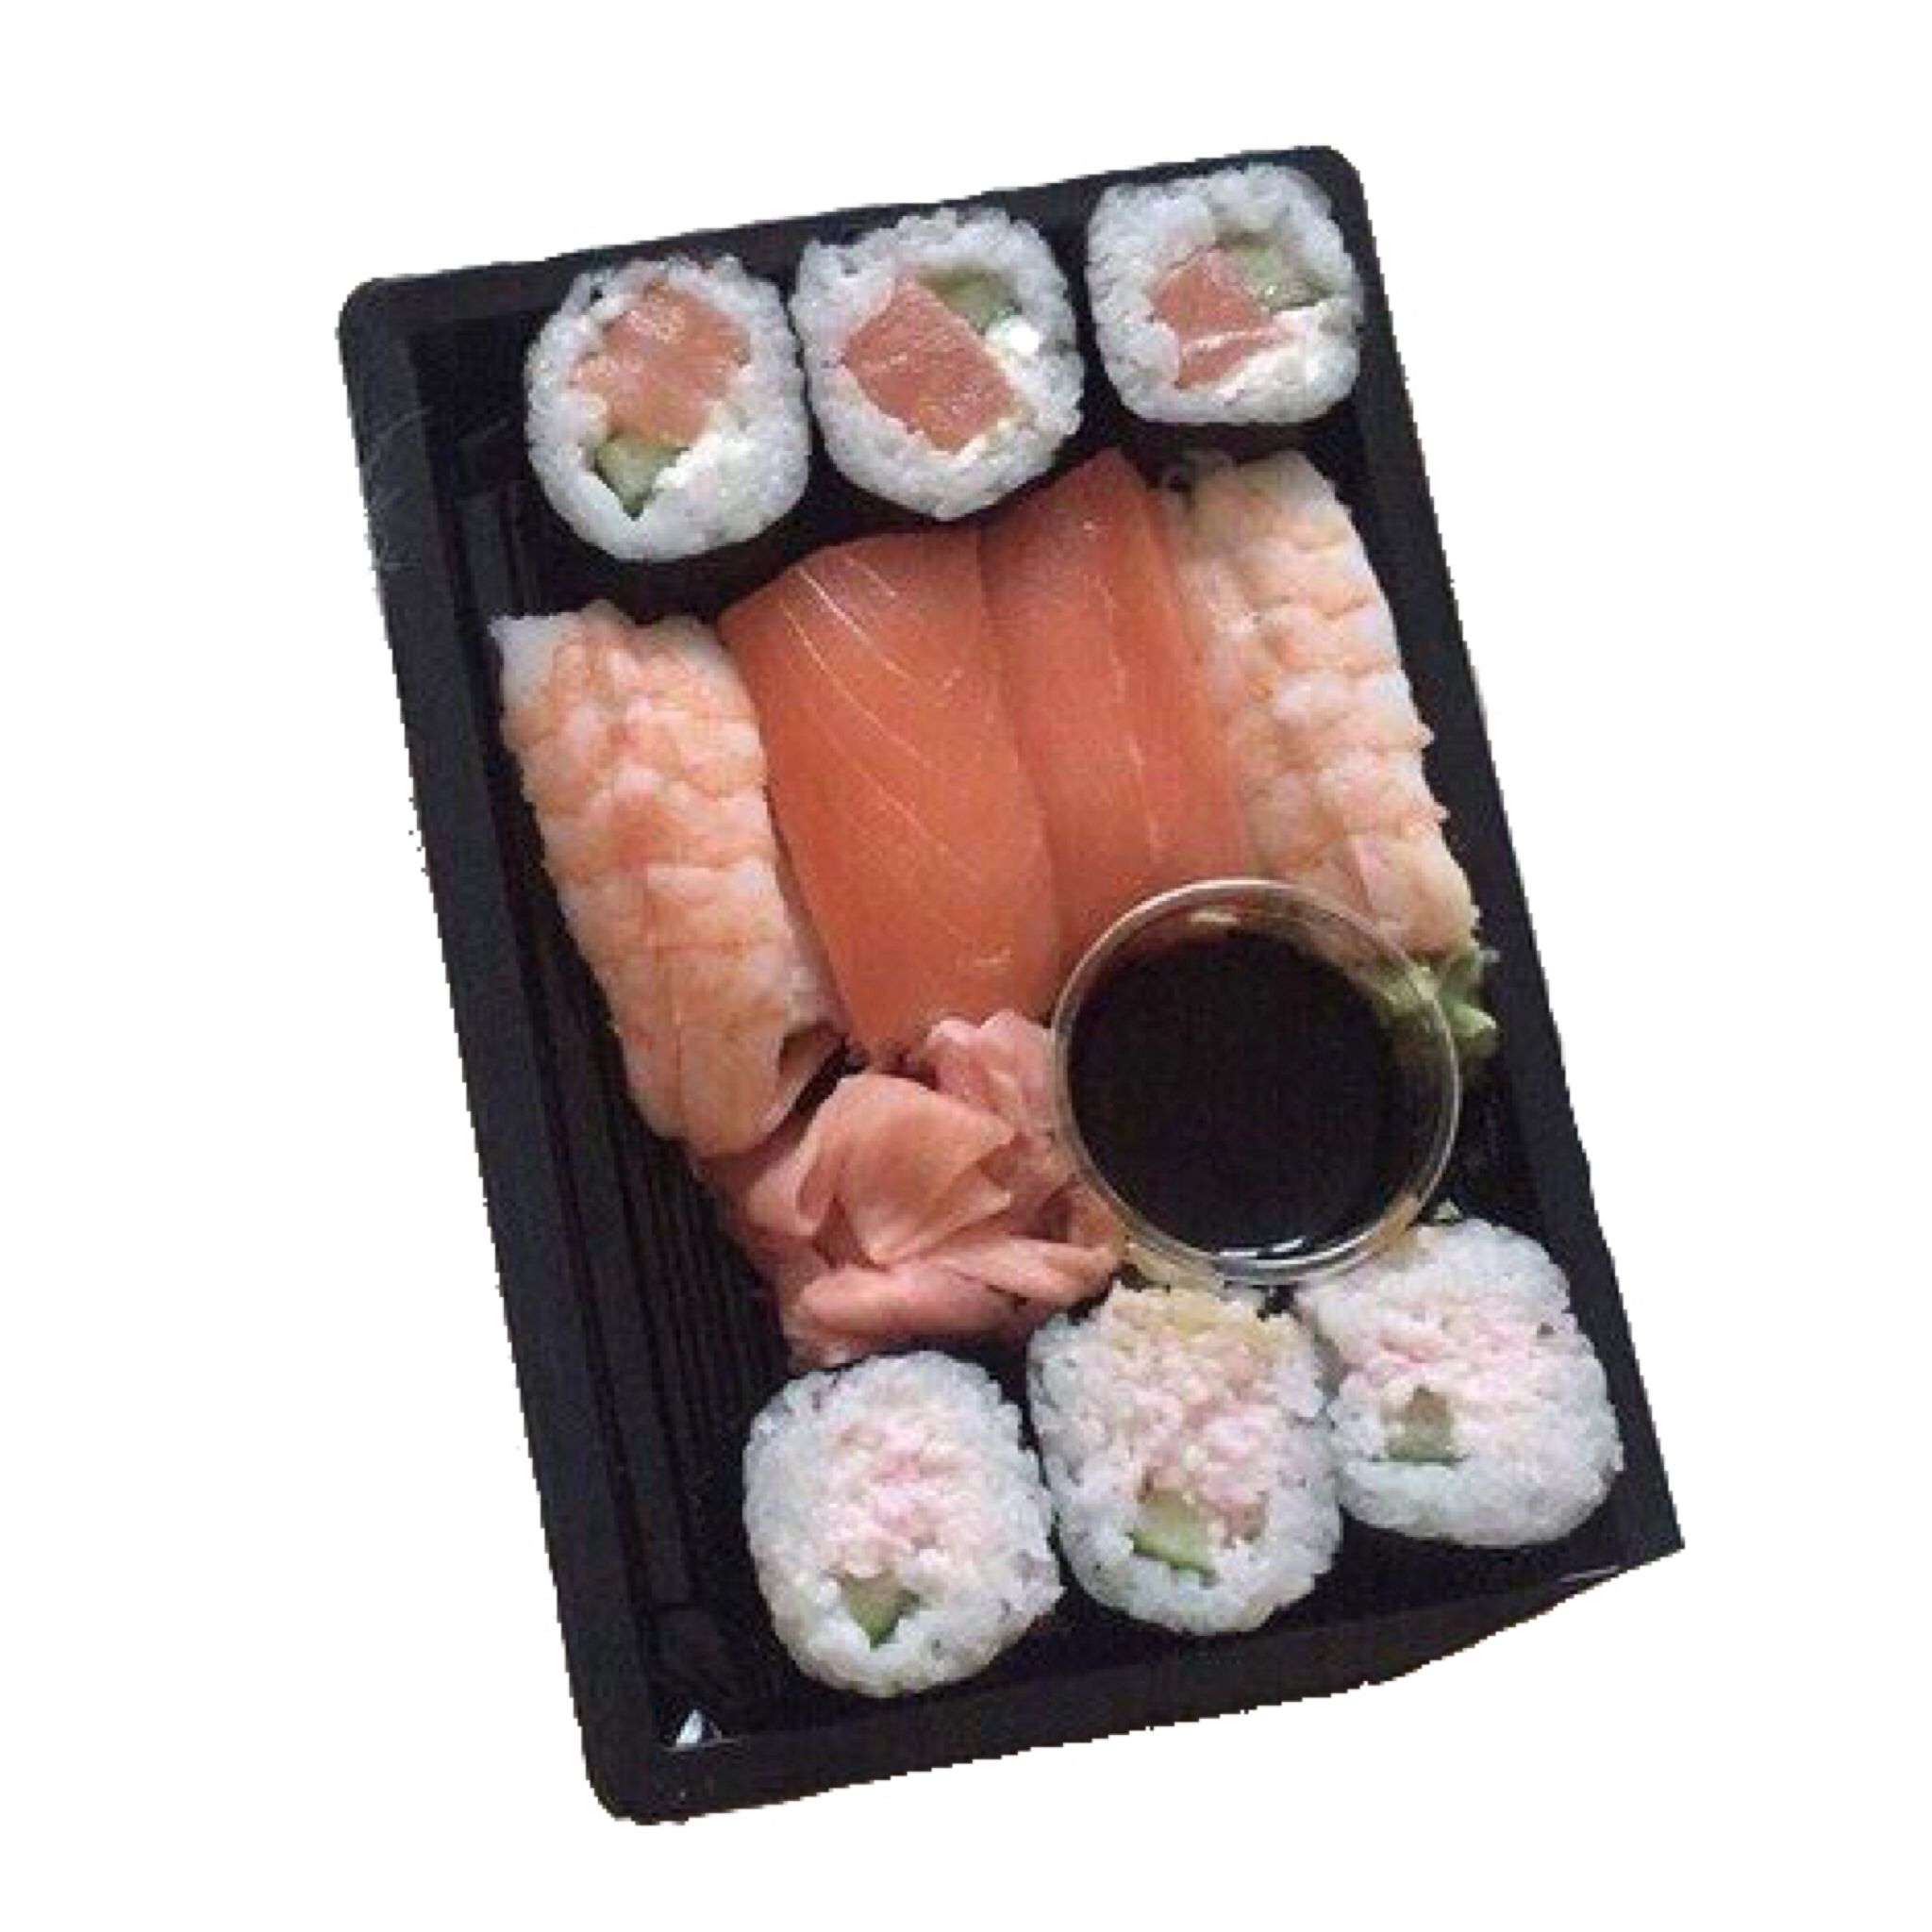 Sushi Png Food Png Strawberry Png Tumblr Food